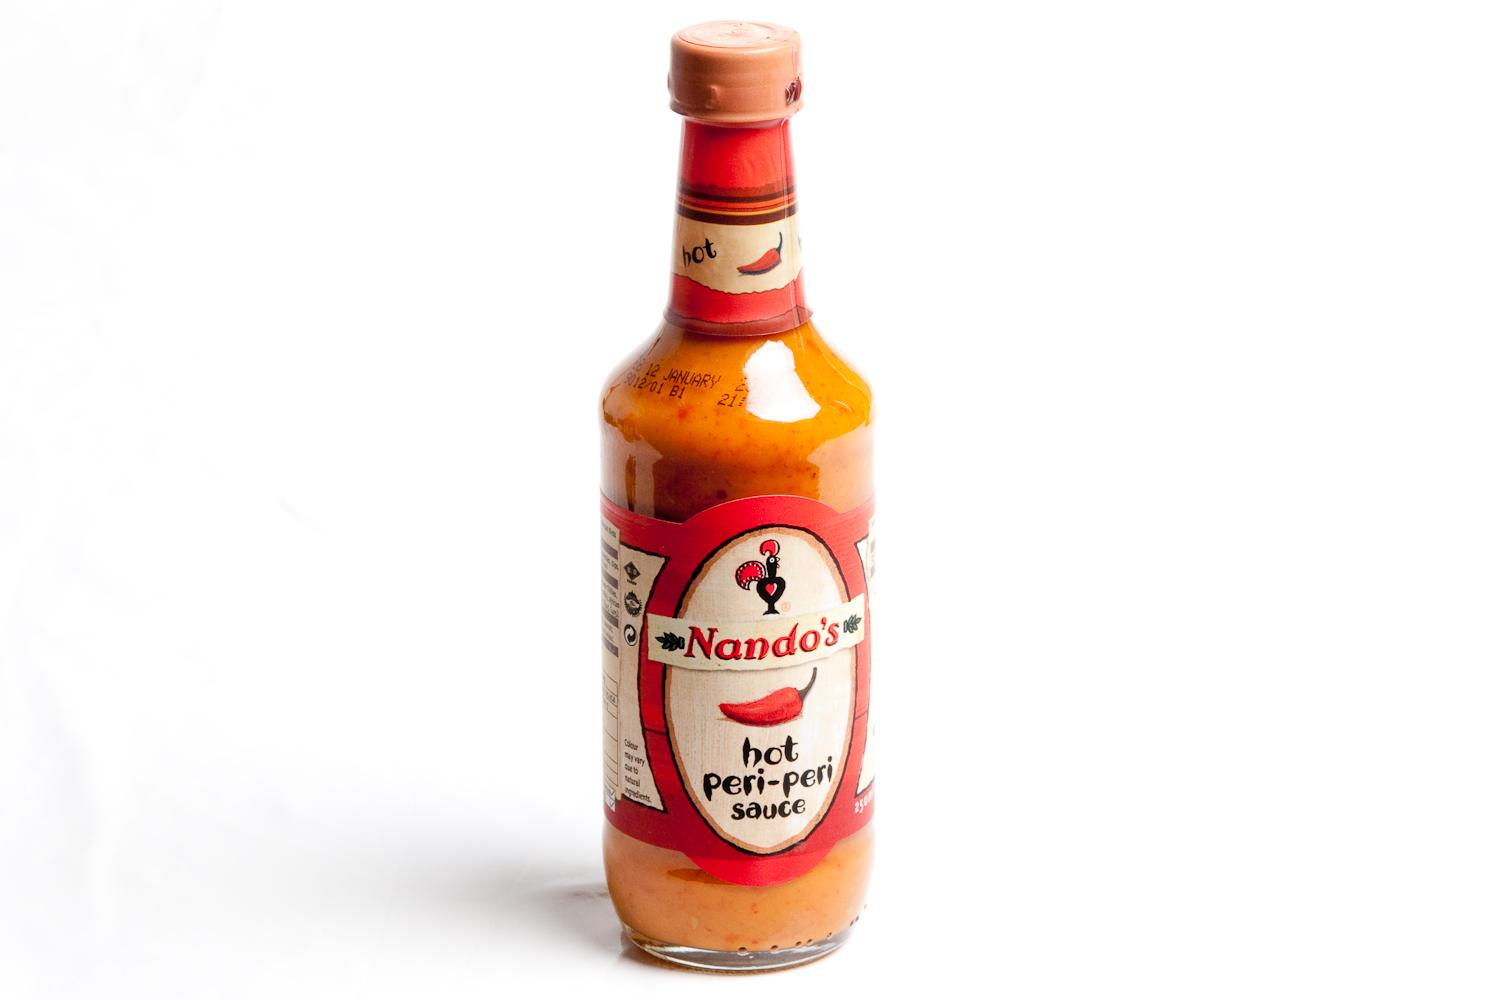 spoons of Nando's Hot sauce